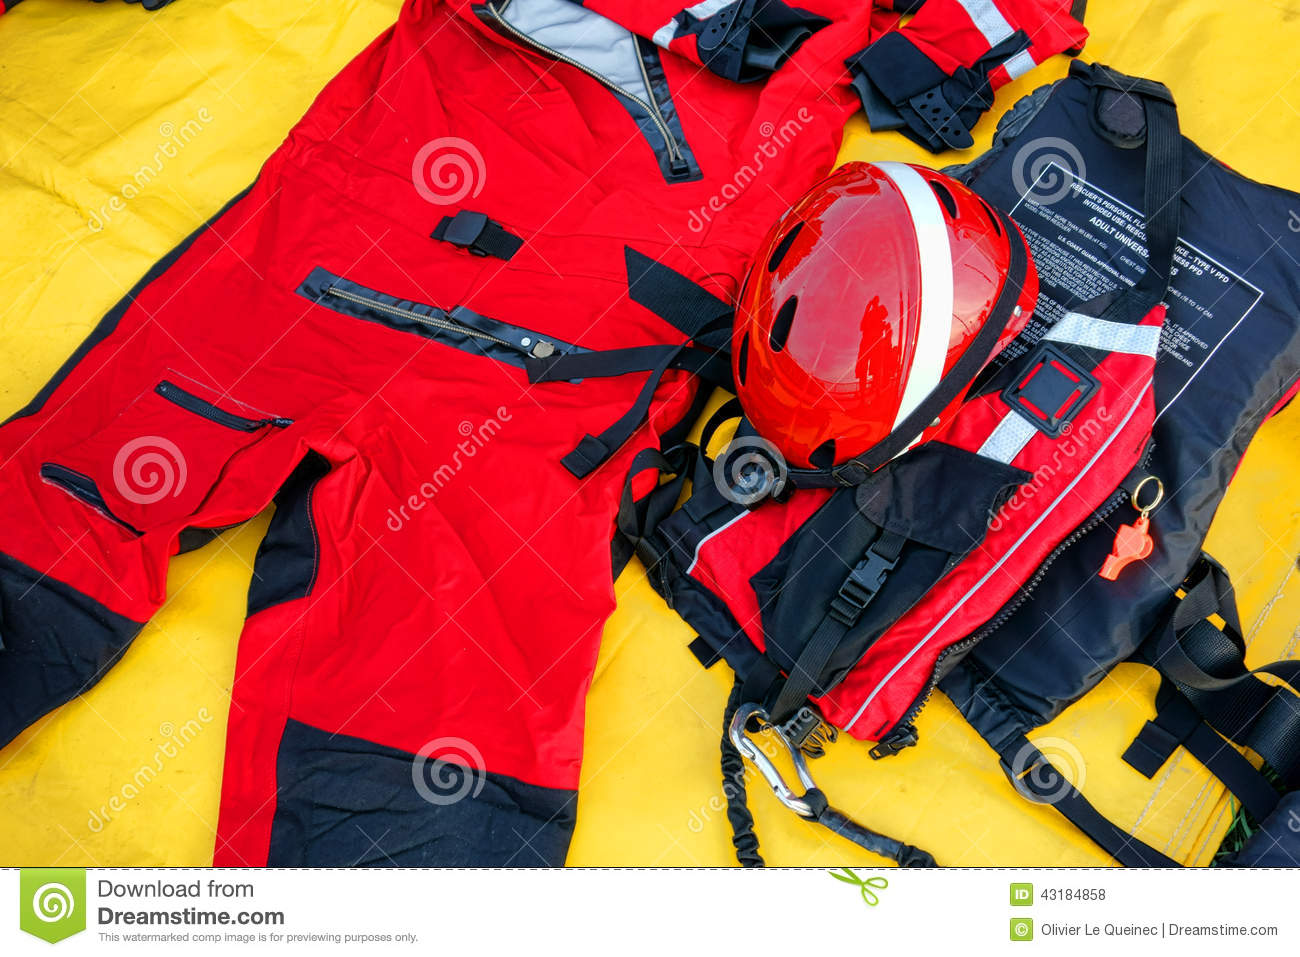 Diver Firefighter Wetsuit Emergency Rescue Kit